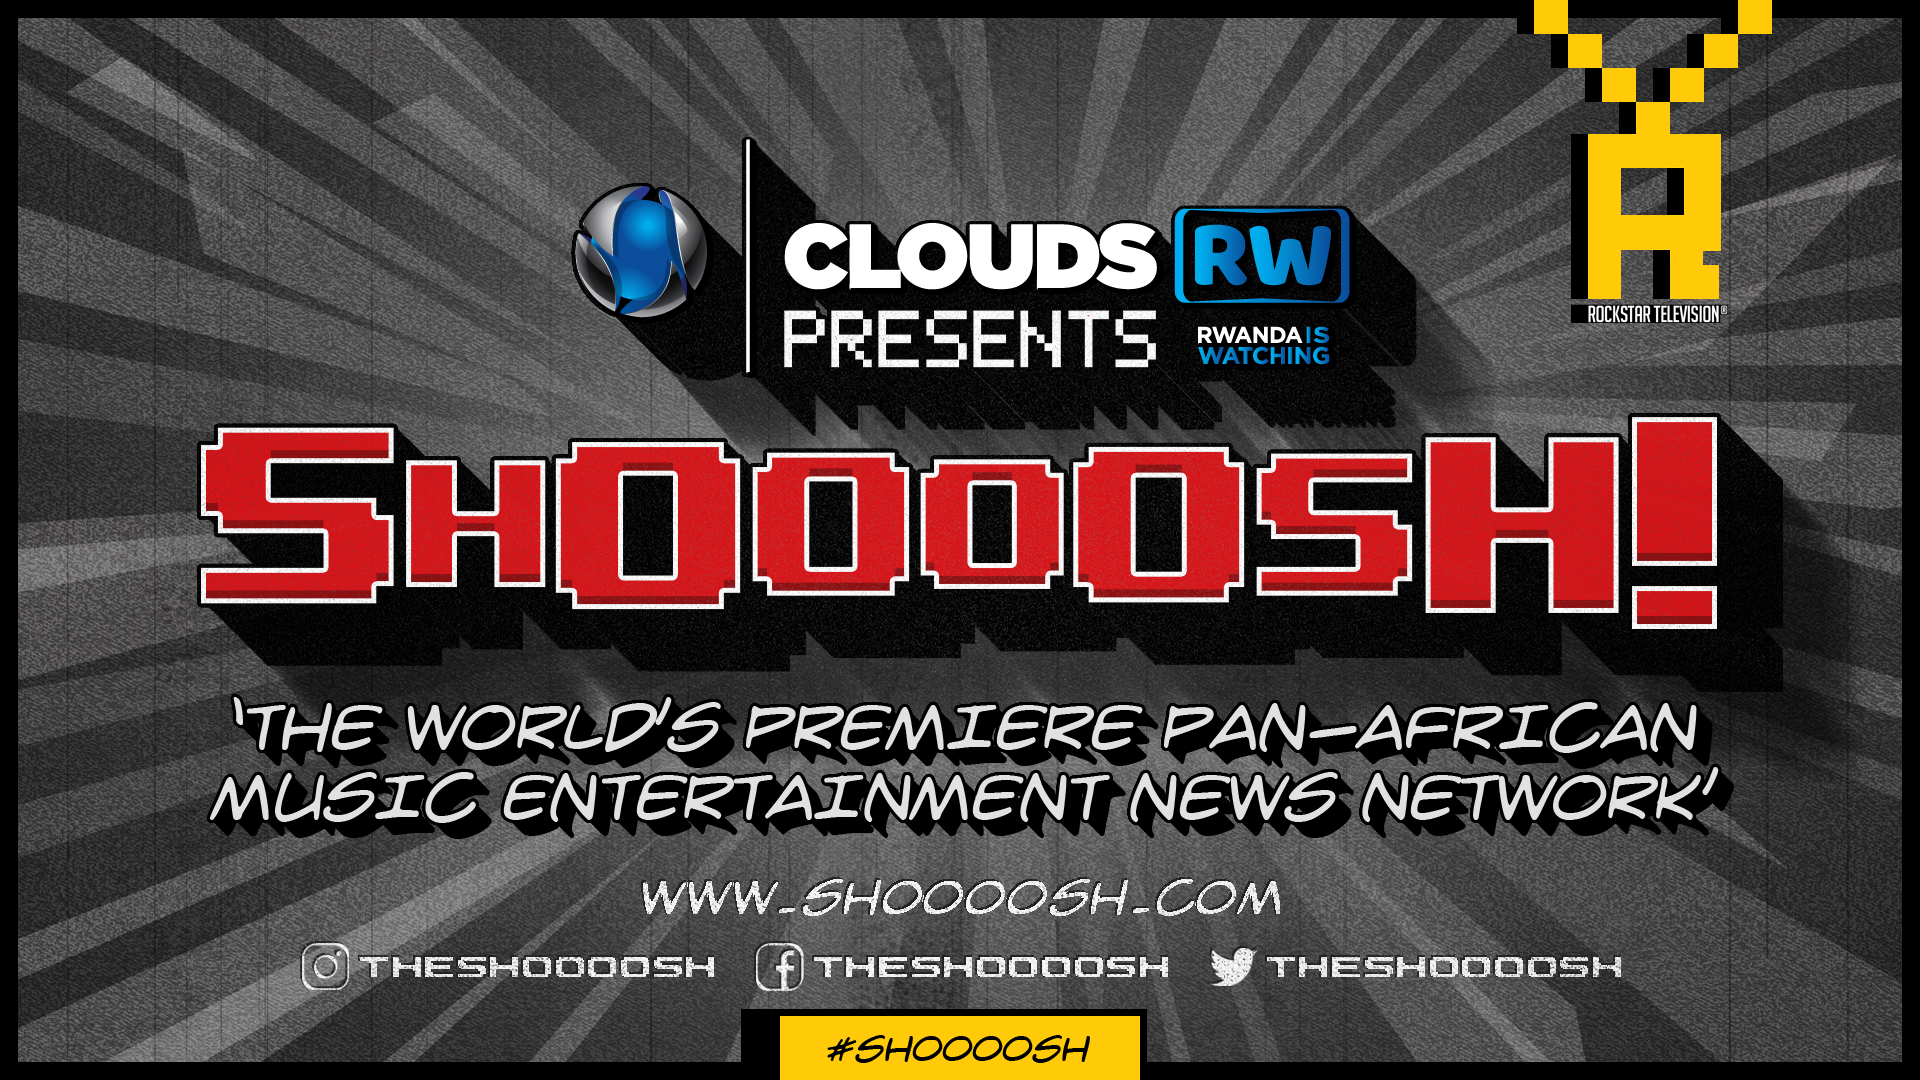 SHOOOOSH COVER CLOUDS RWANDA